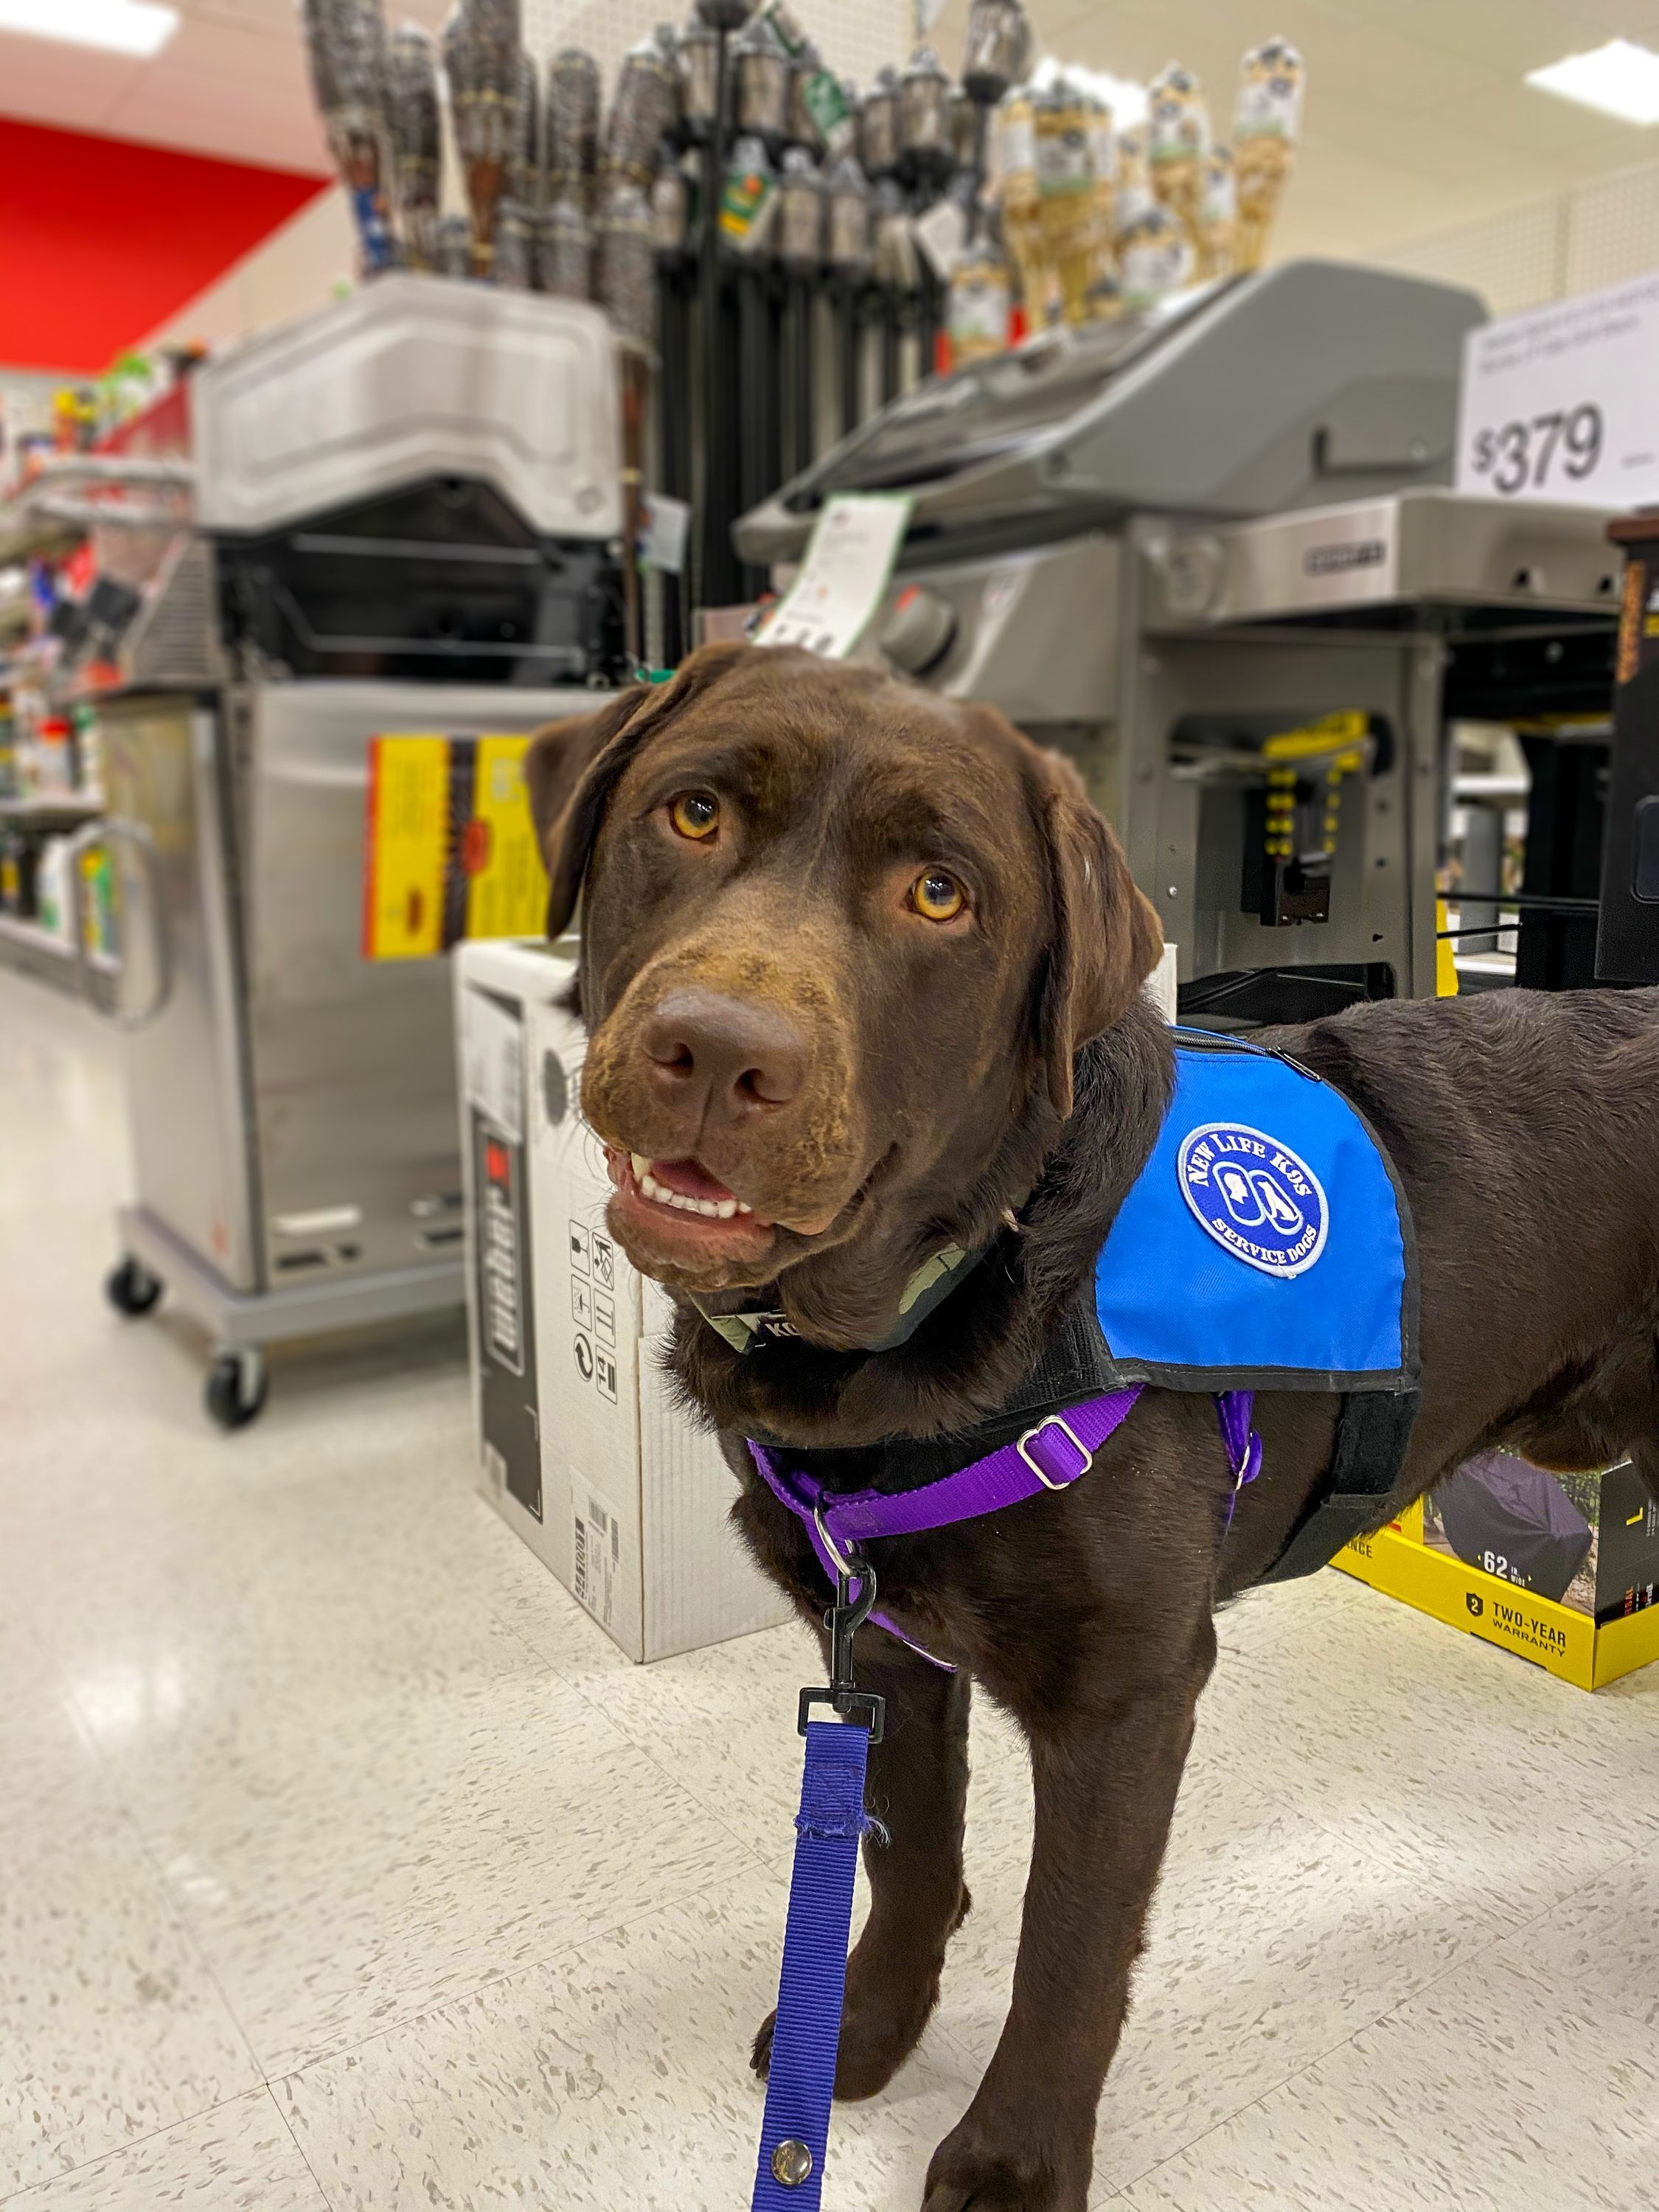 The Importance of Keeping Your Service Dog Well-Groomed & Presentable